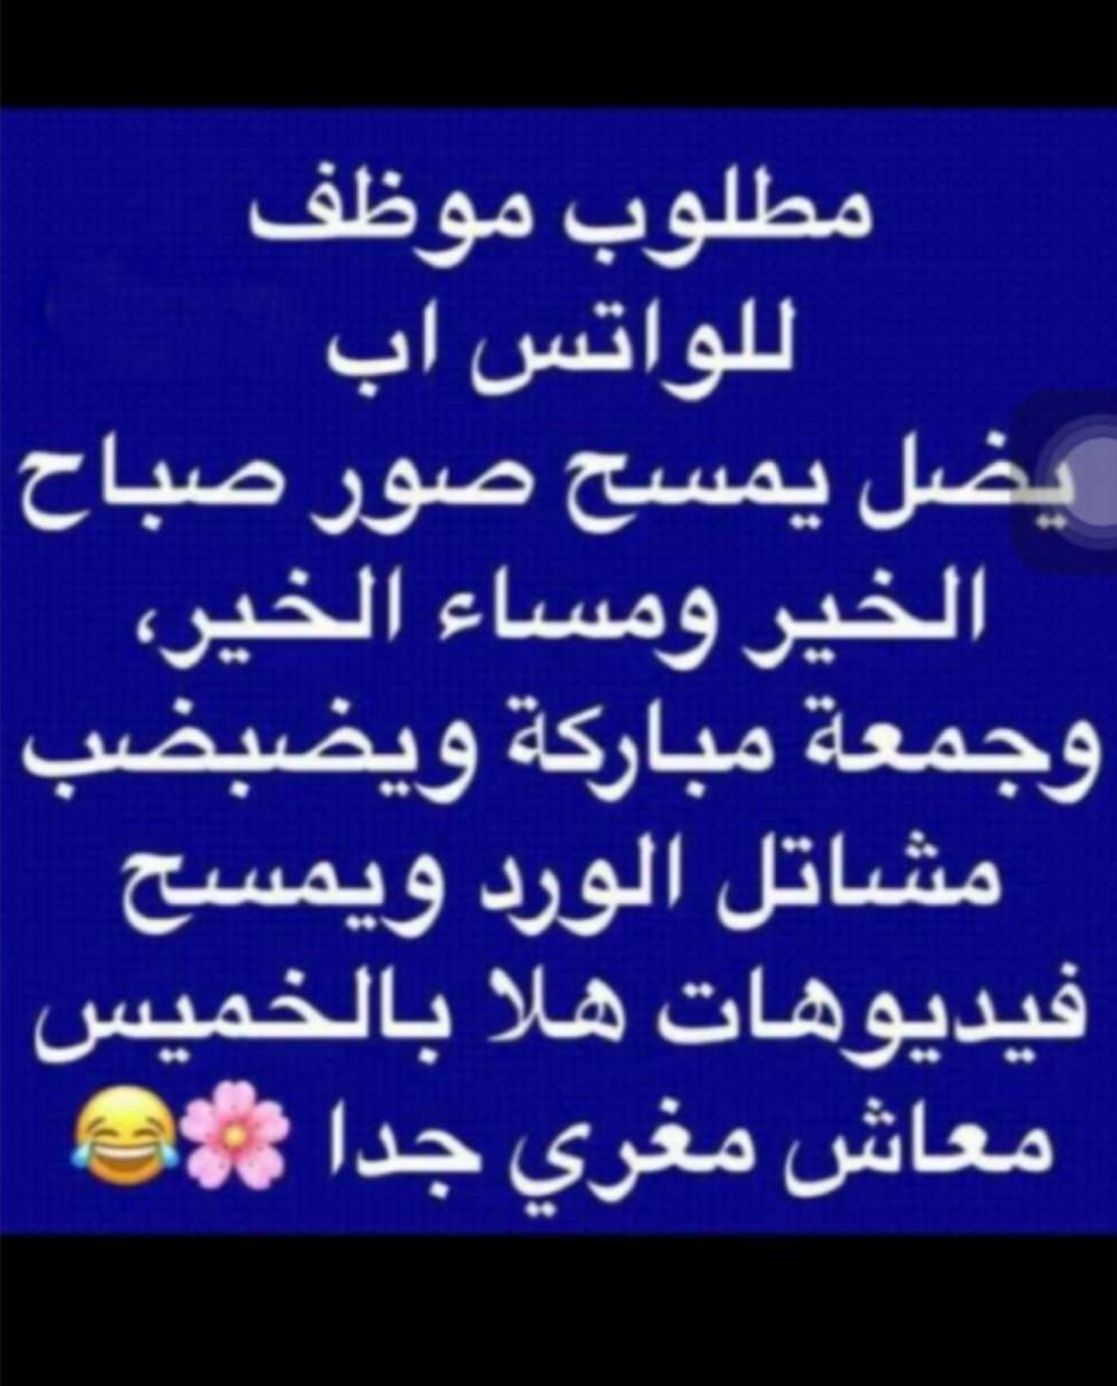 Pin By Ghada Kat On نكت Ex Quotes Funny Quotes